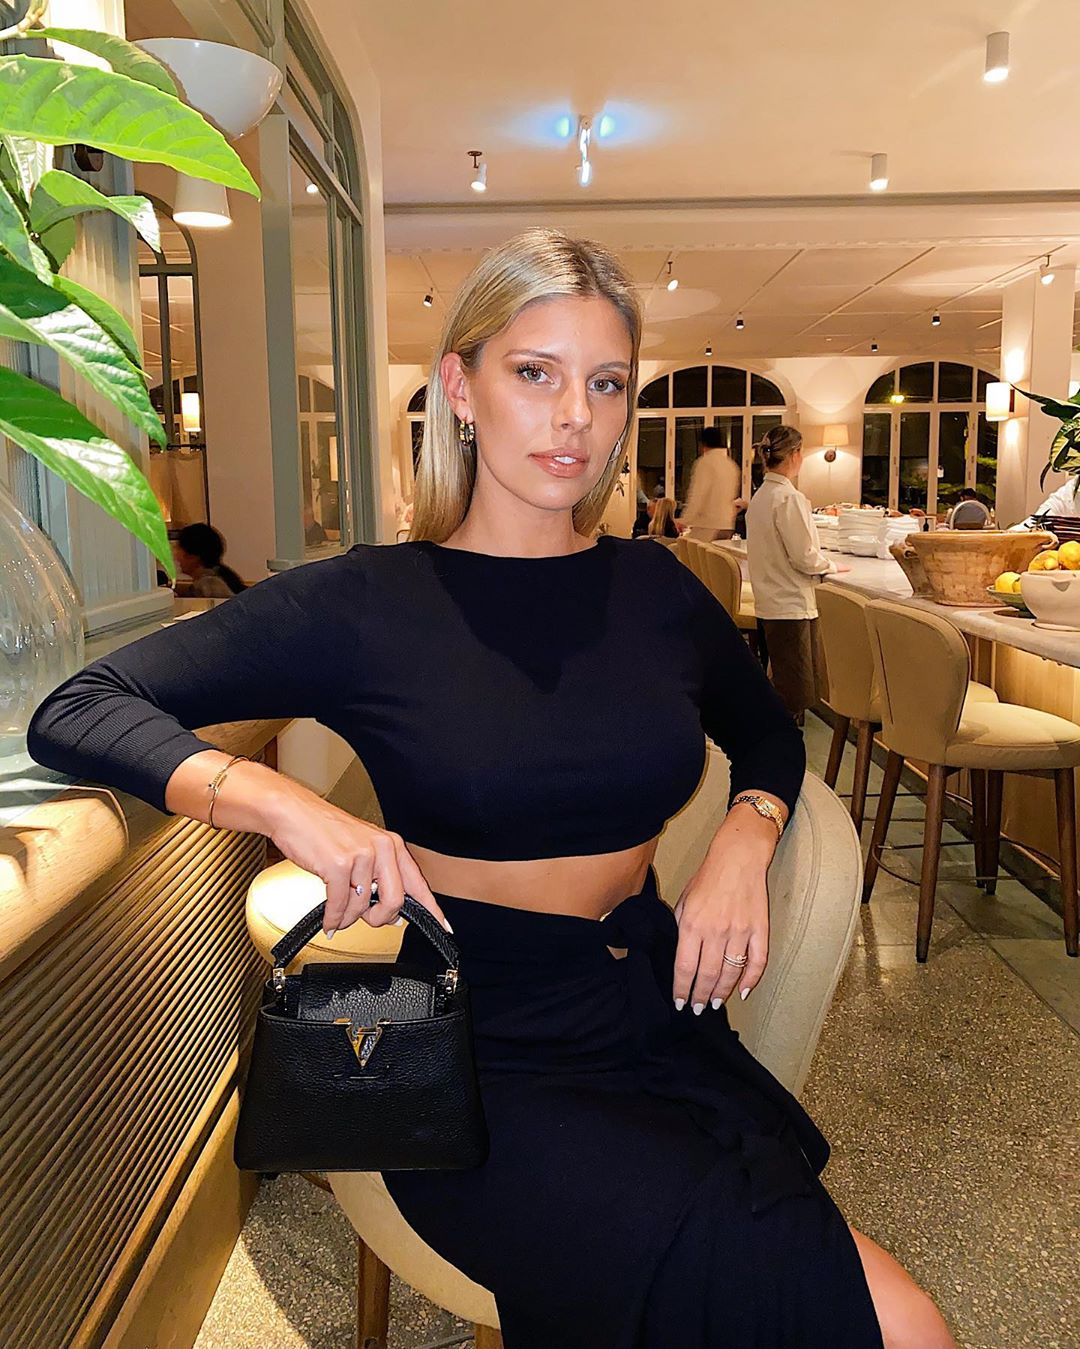 Natasha Oakley donning a Figure hugging Song Of Style black crop top with 3/4 sleeves and a crew neck